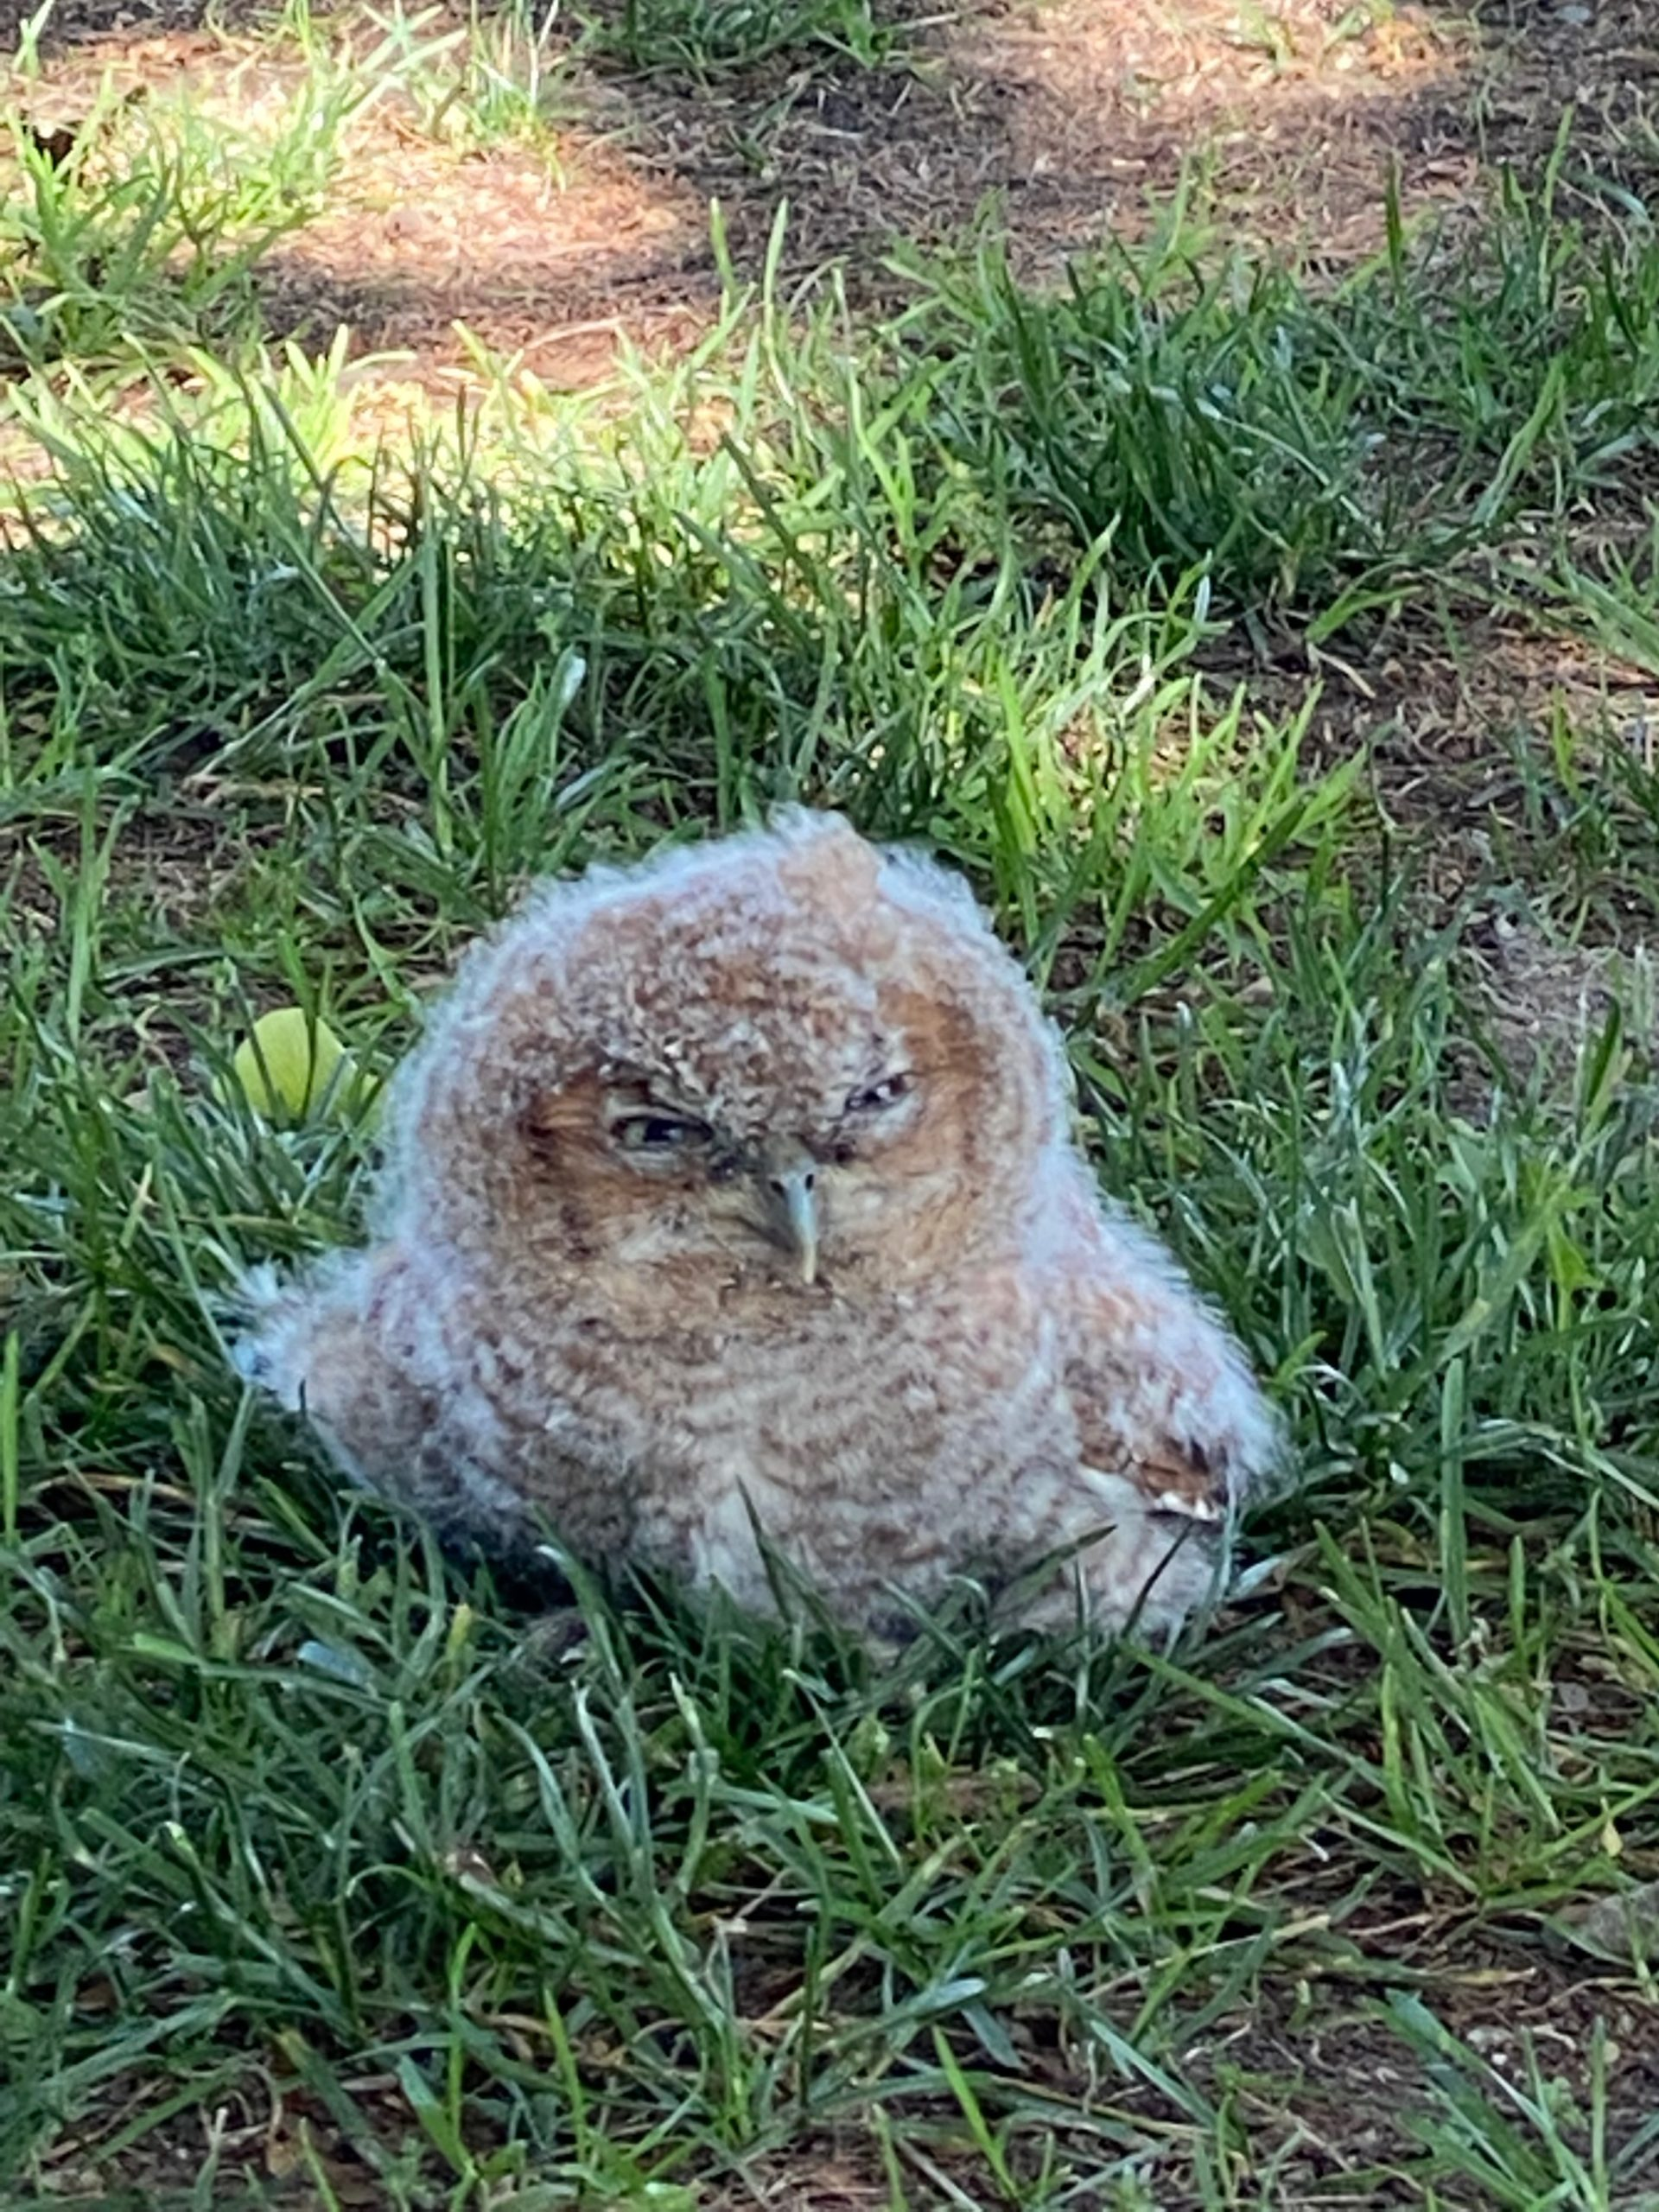 A screech owl fledgling that fell from a tree in Mashashimuet Park on Thursday was reunited with its siblings by wildlife rescuer Nick Marzano. JACKIE HOVING